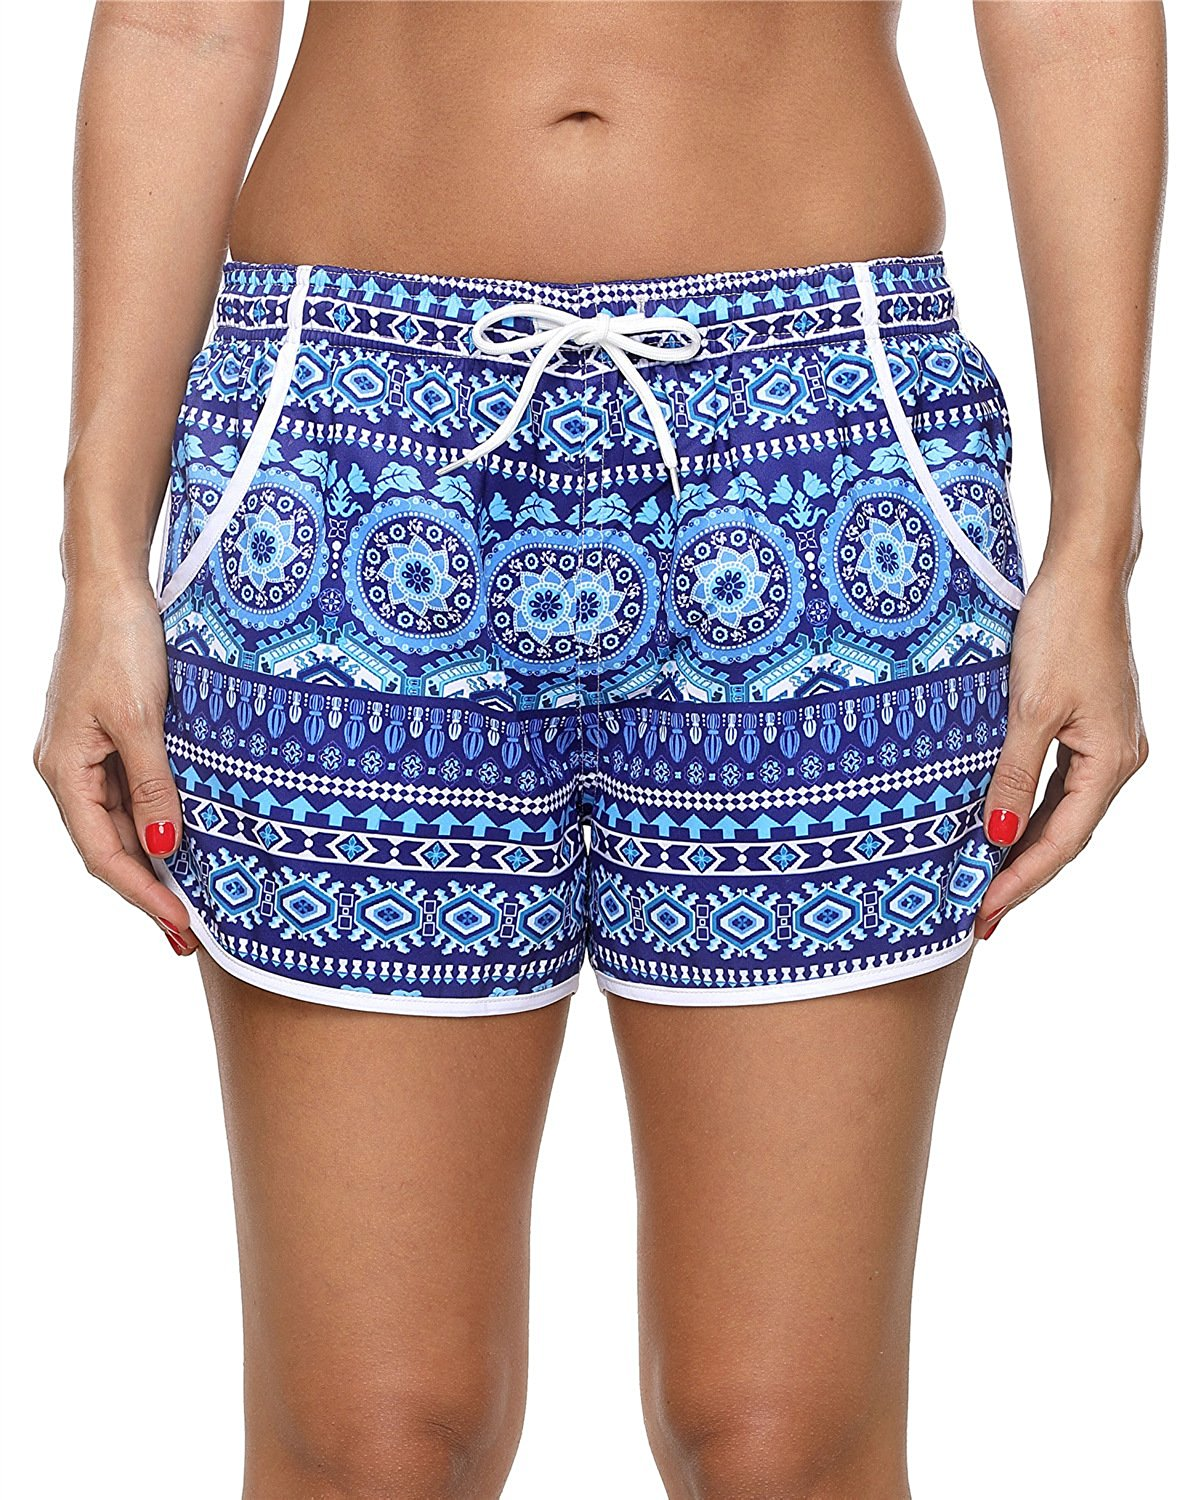 cc8eaaad0c Get Quotations · ALove Womens Stretch Board Shorts High Waisted Beach Bottom  Swim Shorts Swimsuit